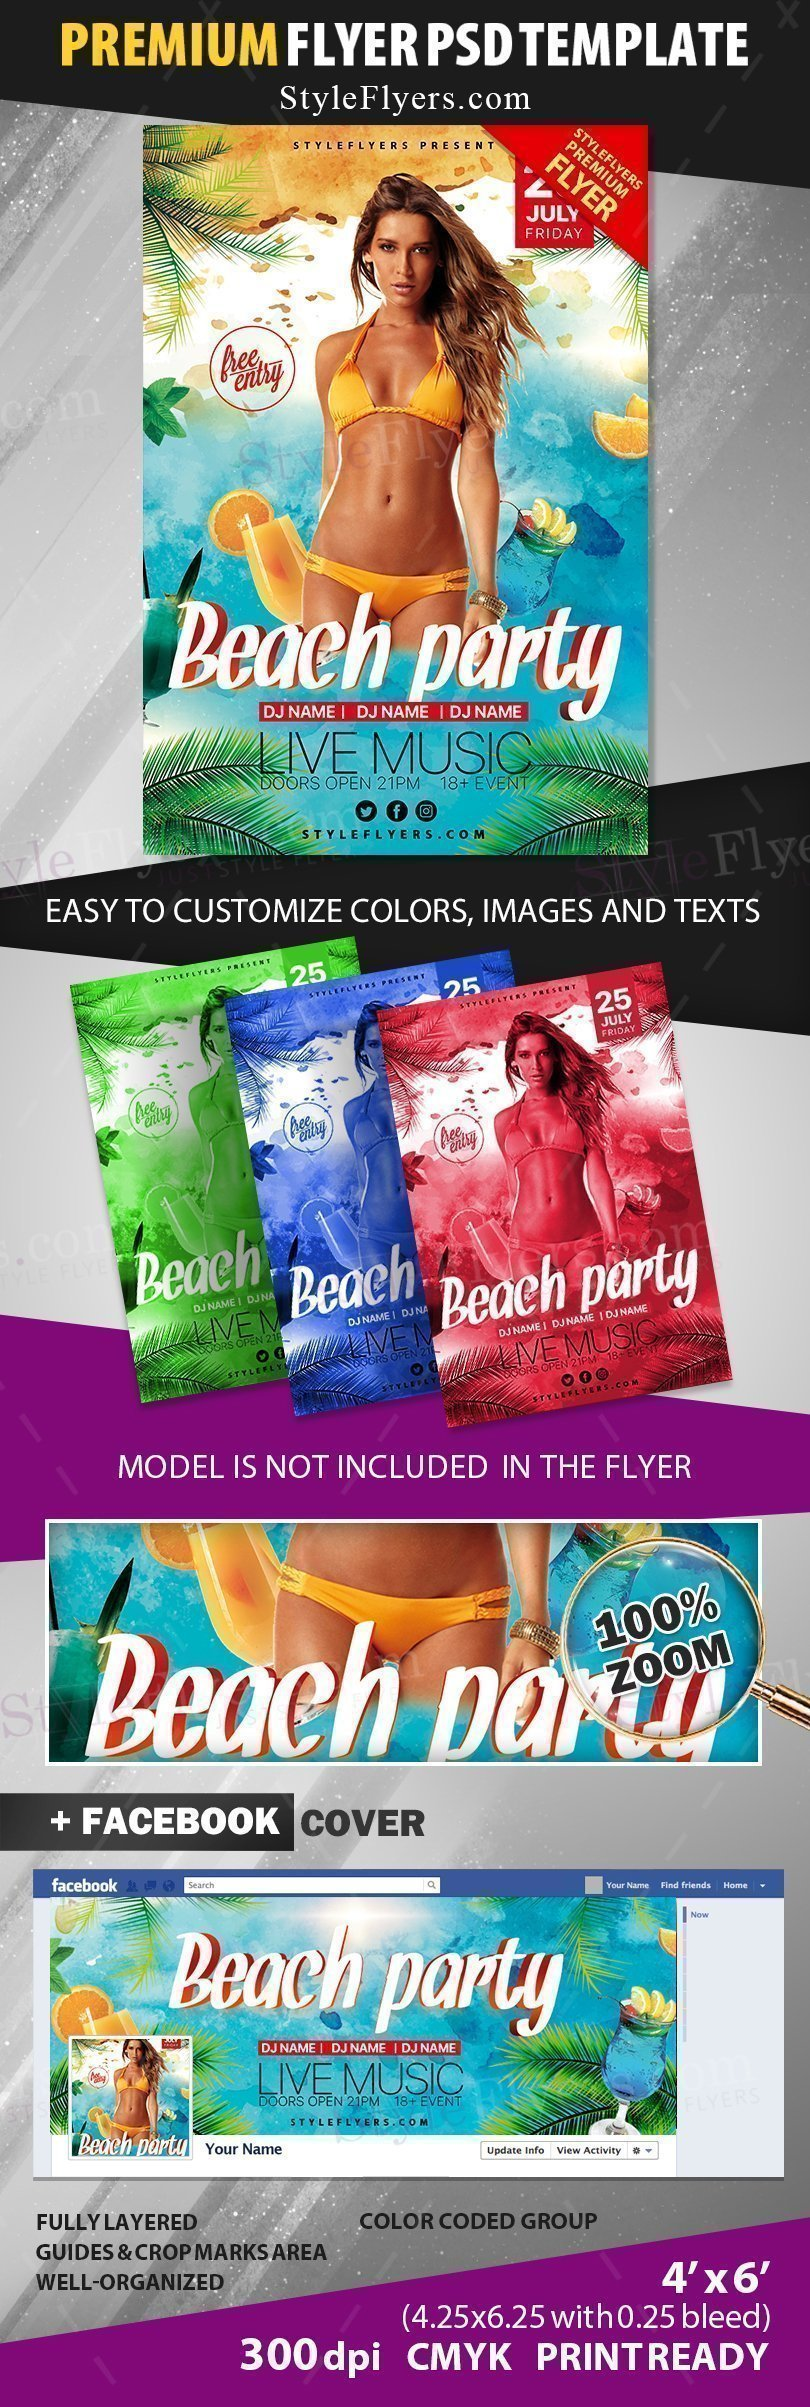 preview_beach party_psd_flyer